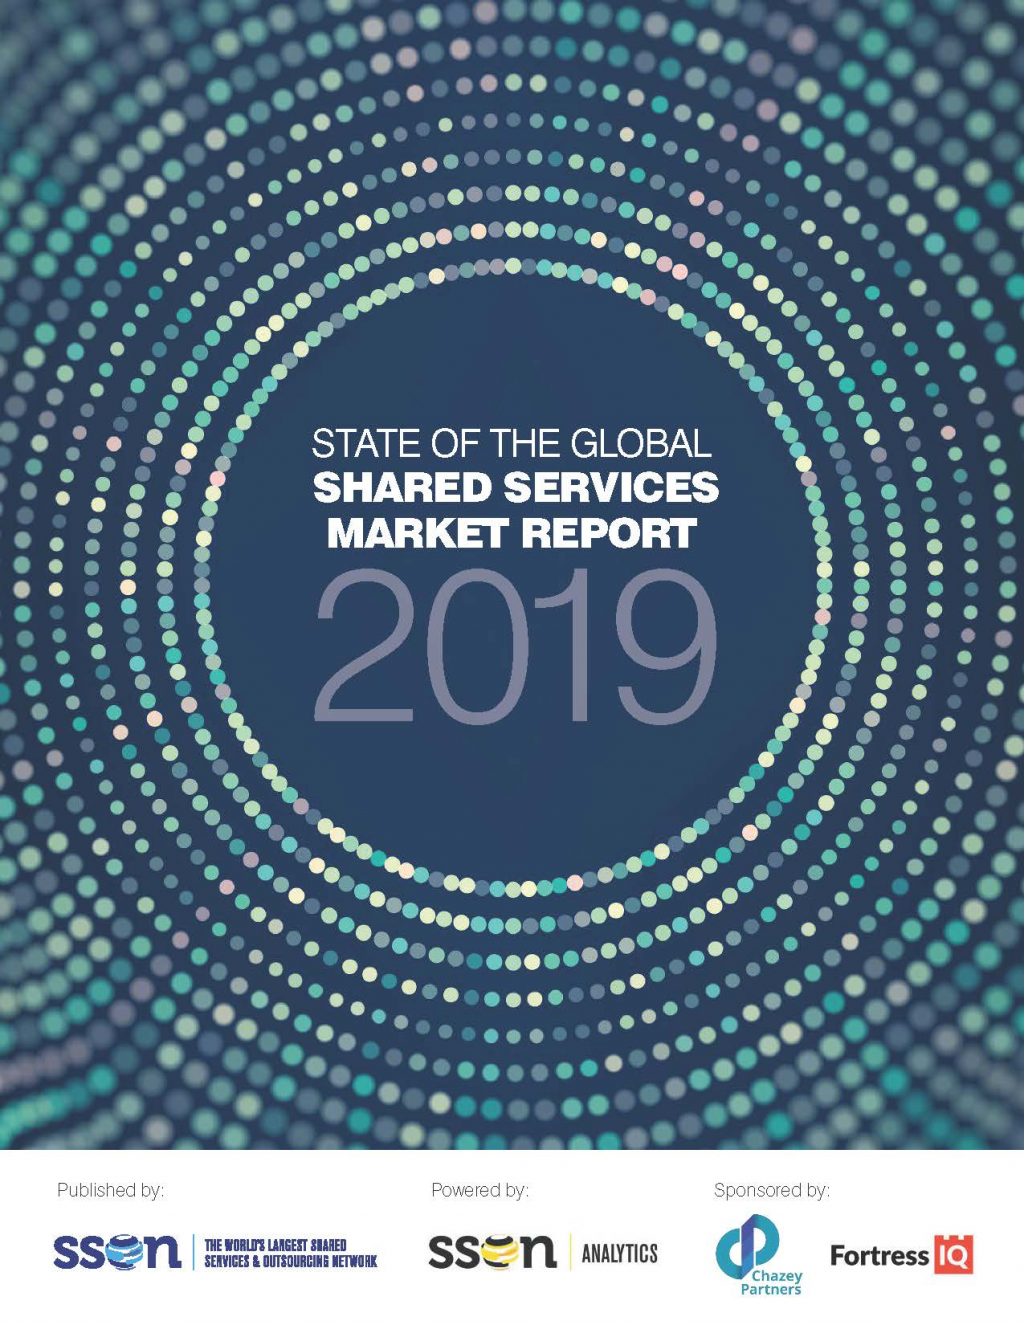 Read the Full Report - State of The Global Shared Services Market Report 2019